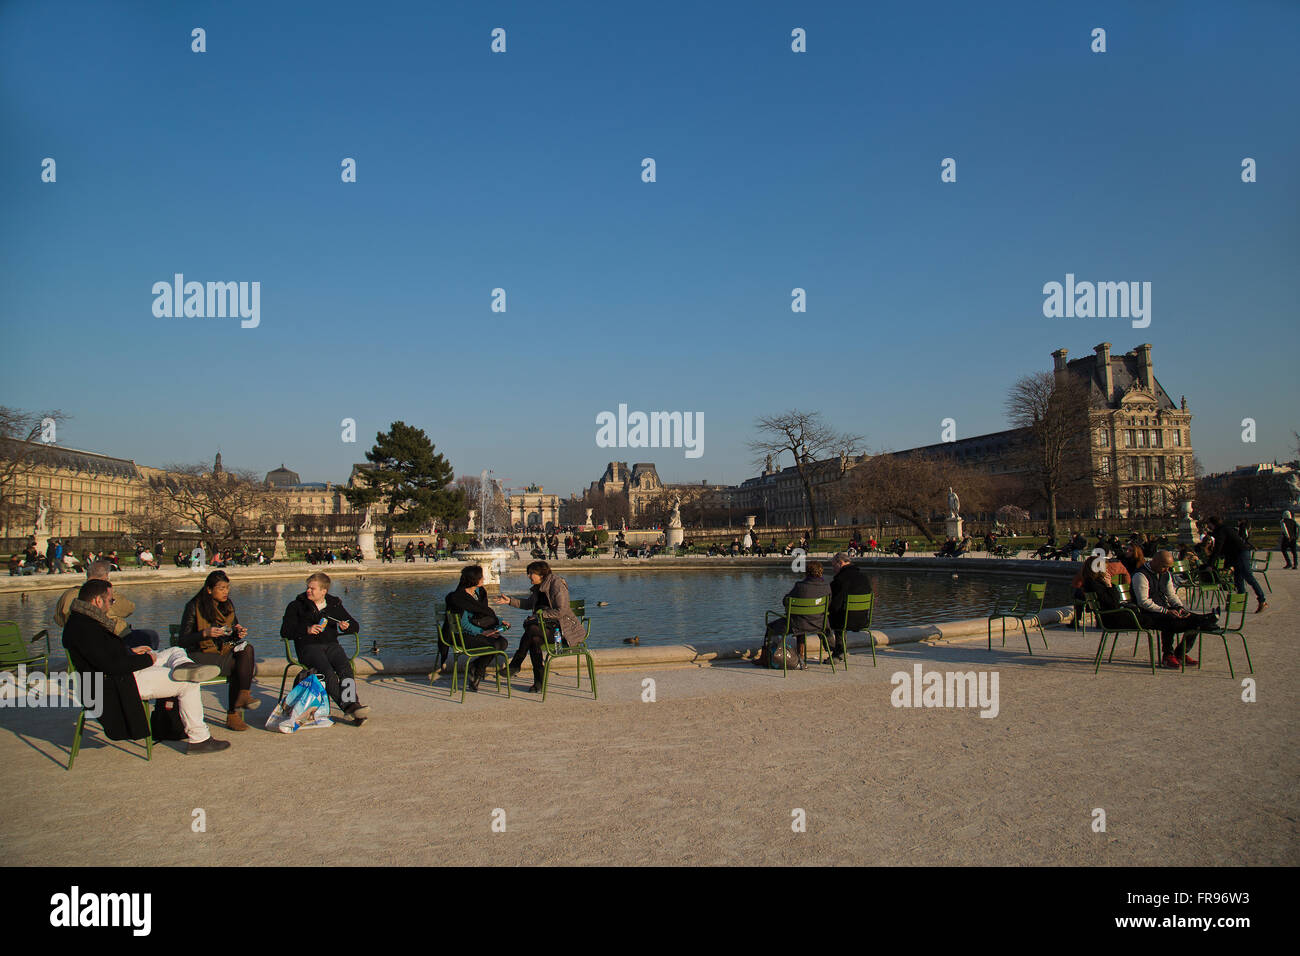 Parisians relaxing in the Jardin des Tuileries in Paris, France in winter - Stock Image